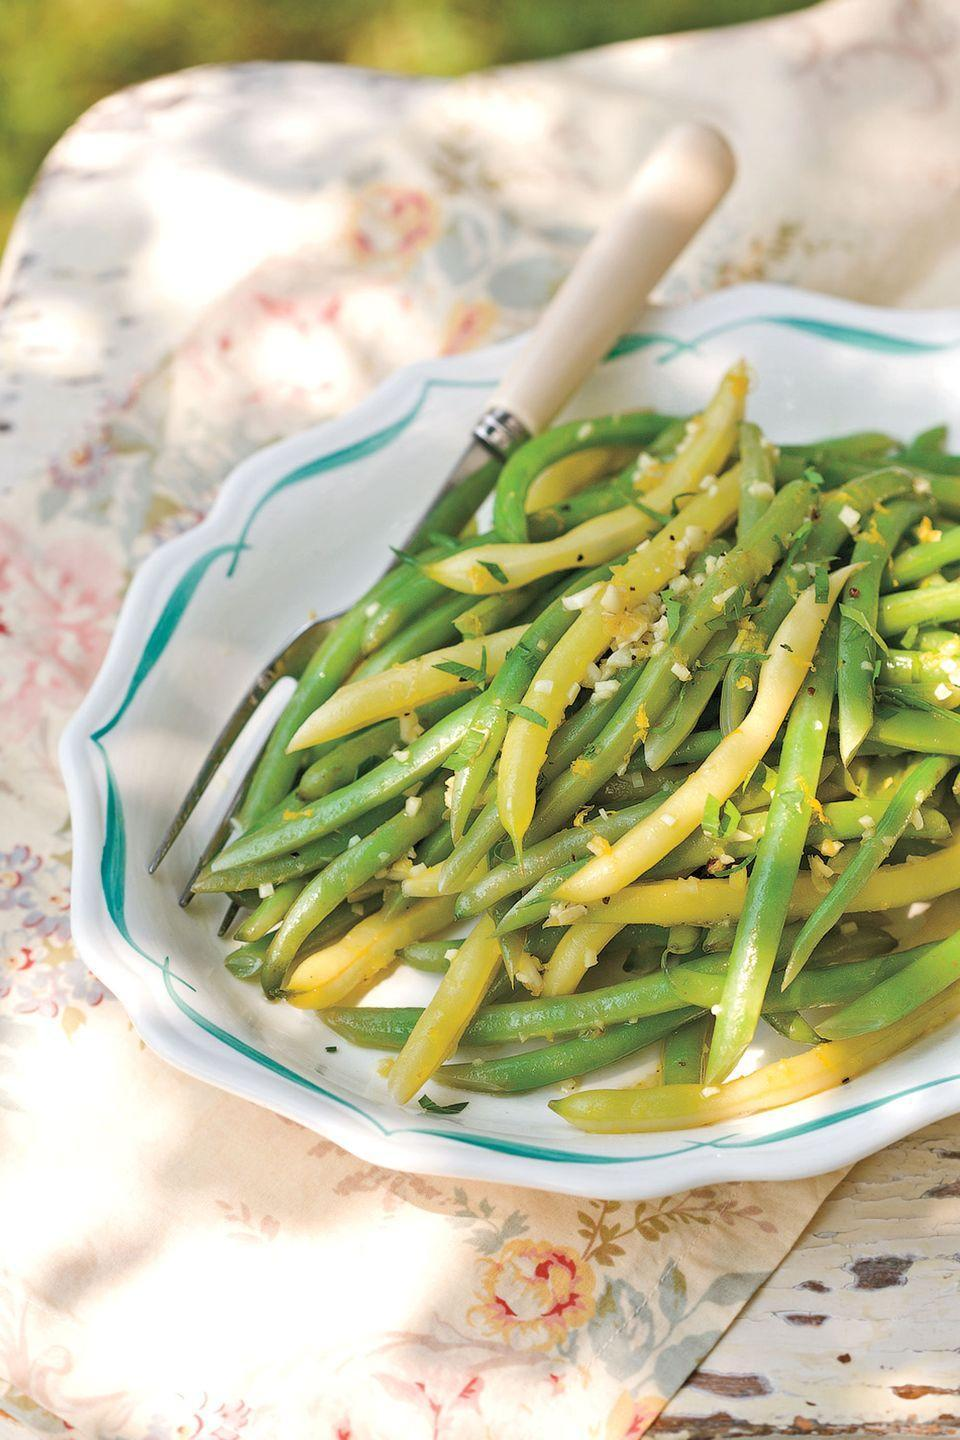 "Punch up this side-dish recipe fast with the hardworking supermarket standby, orange juice concentrate. <a href=""https://www.countryliving.com/food-drinks/recipes/a2840/green-beans-orange-beurre-blanc-recipe/"" rel=""nofollow noopener"" target=""_blank"" data-ylk=""slk:Get the recipe."" class=""link rapid-noclick-resp""><strong>Get the recipe.</strong></a>"